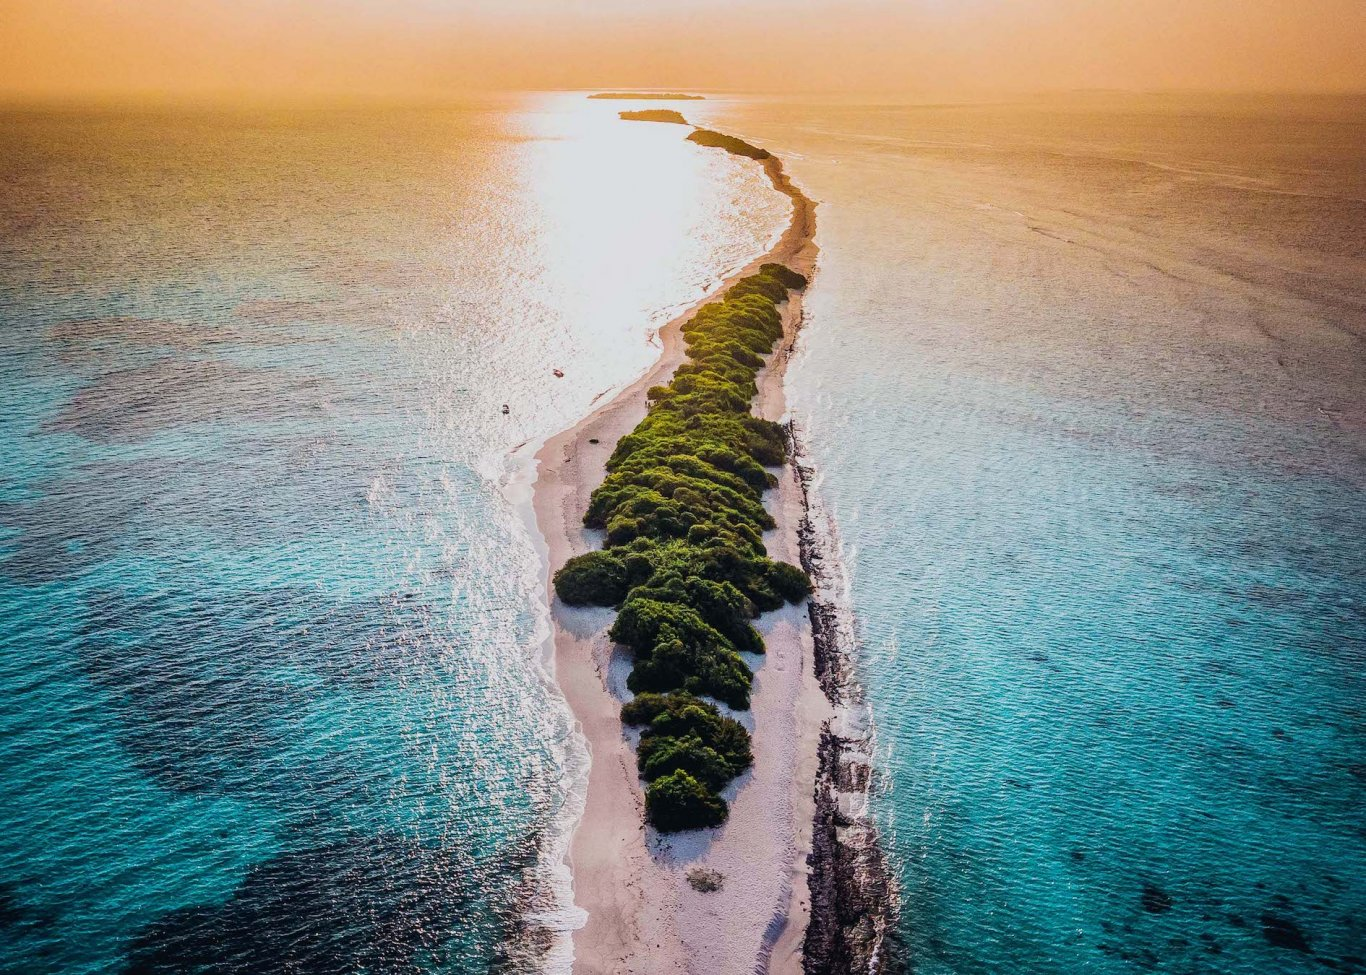 A long sandbank surrounded by bright blue water at sunset in the Maldives